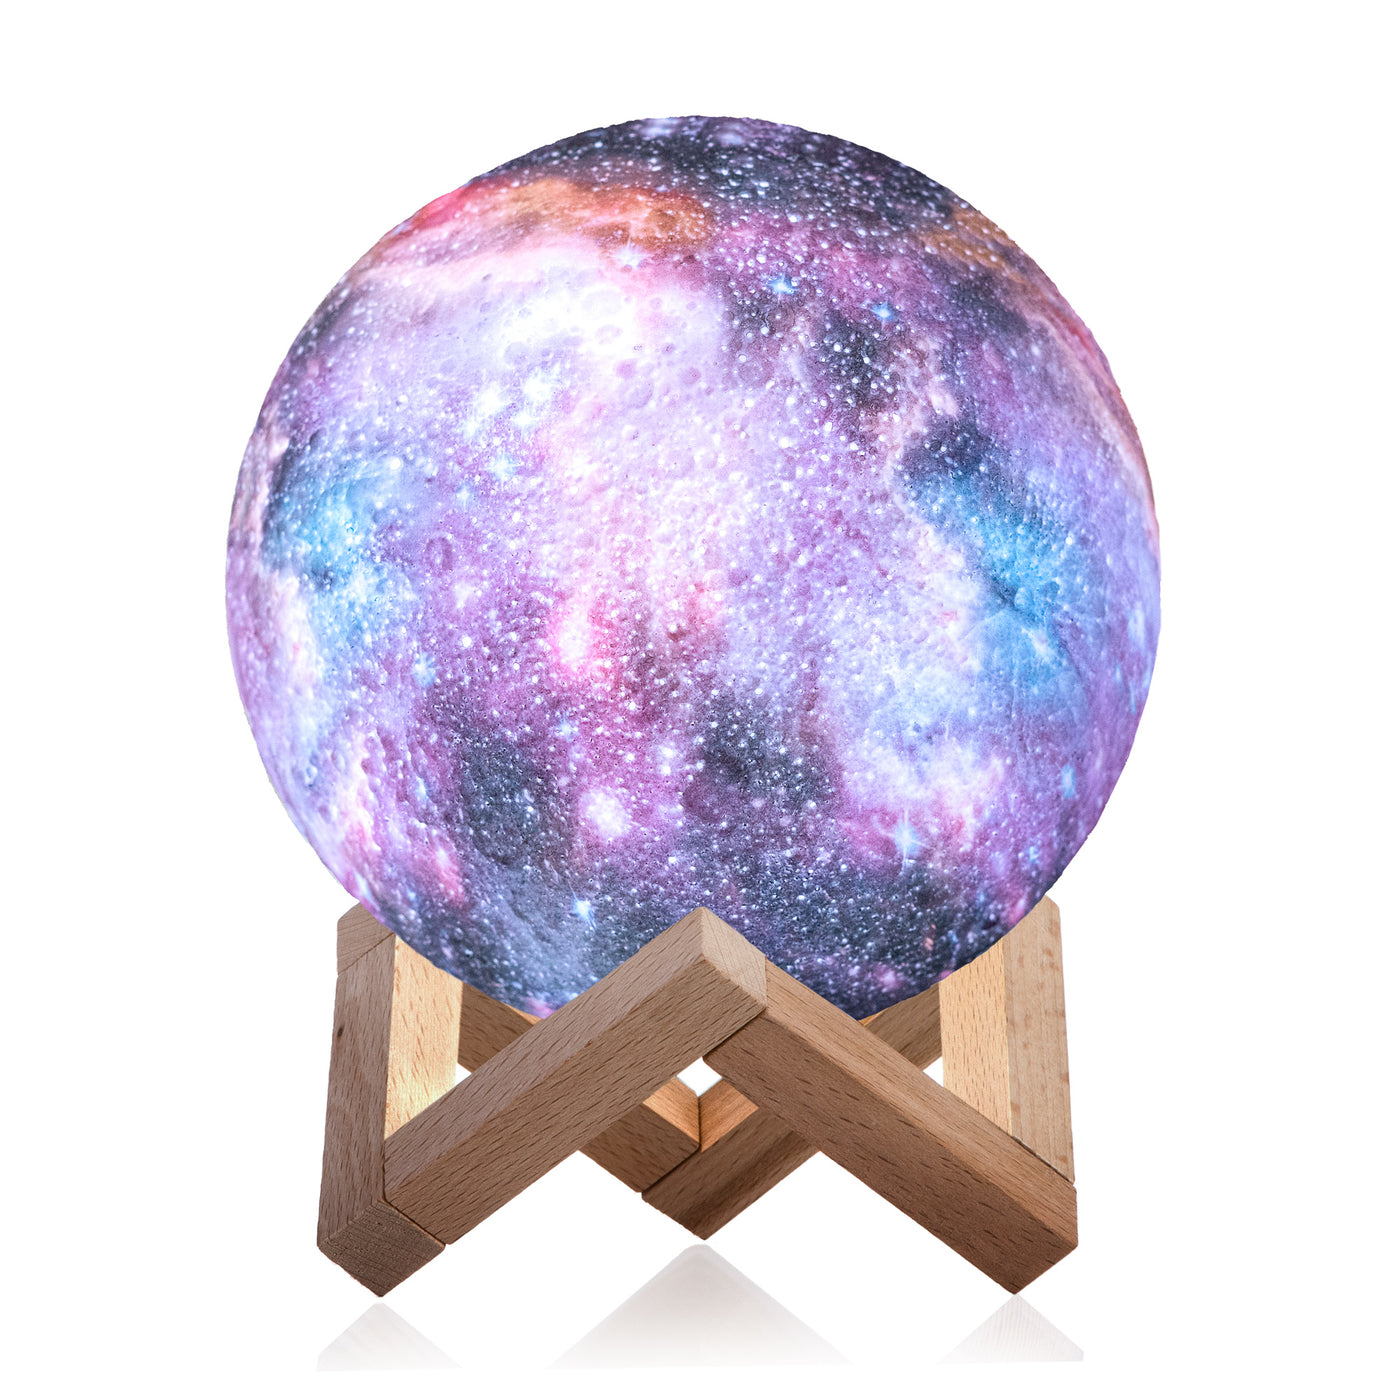 3D Galaxy Lamp with 16 Colors, Wooden Stand and Remote Control, GL-16C-5.9